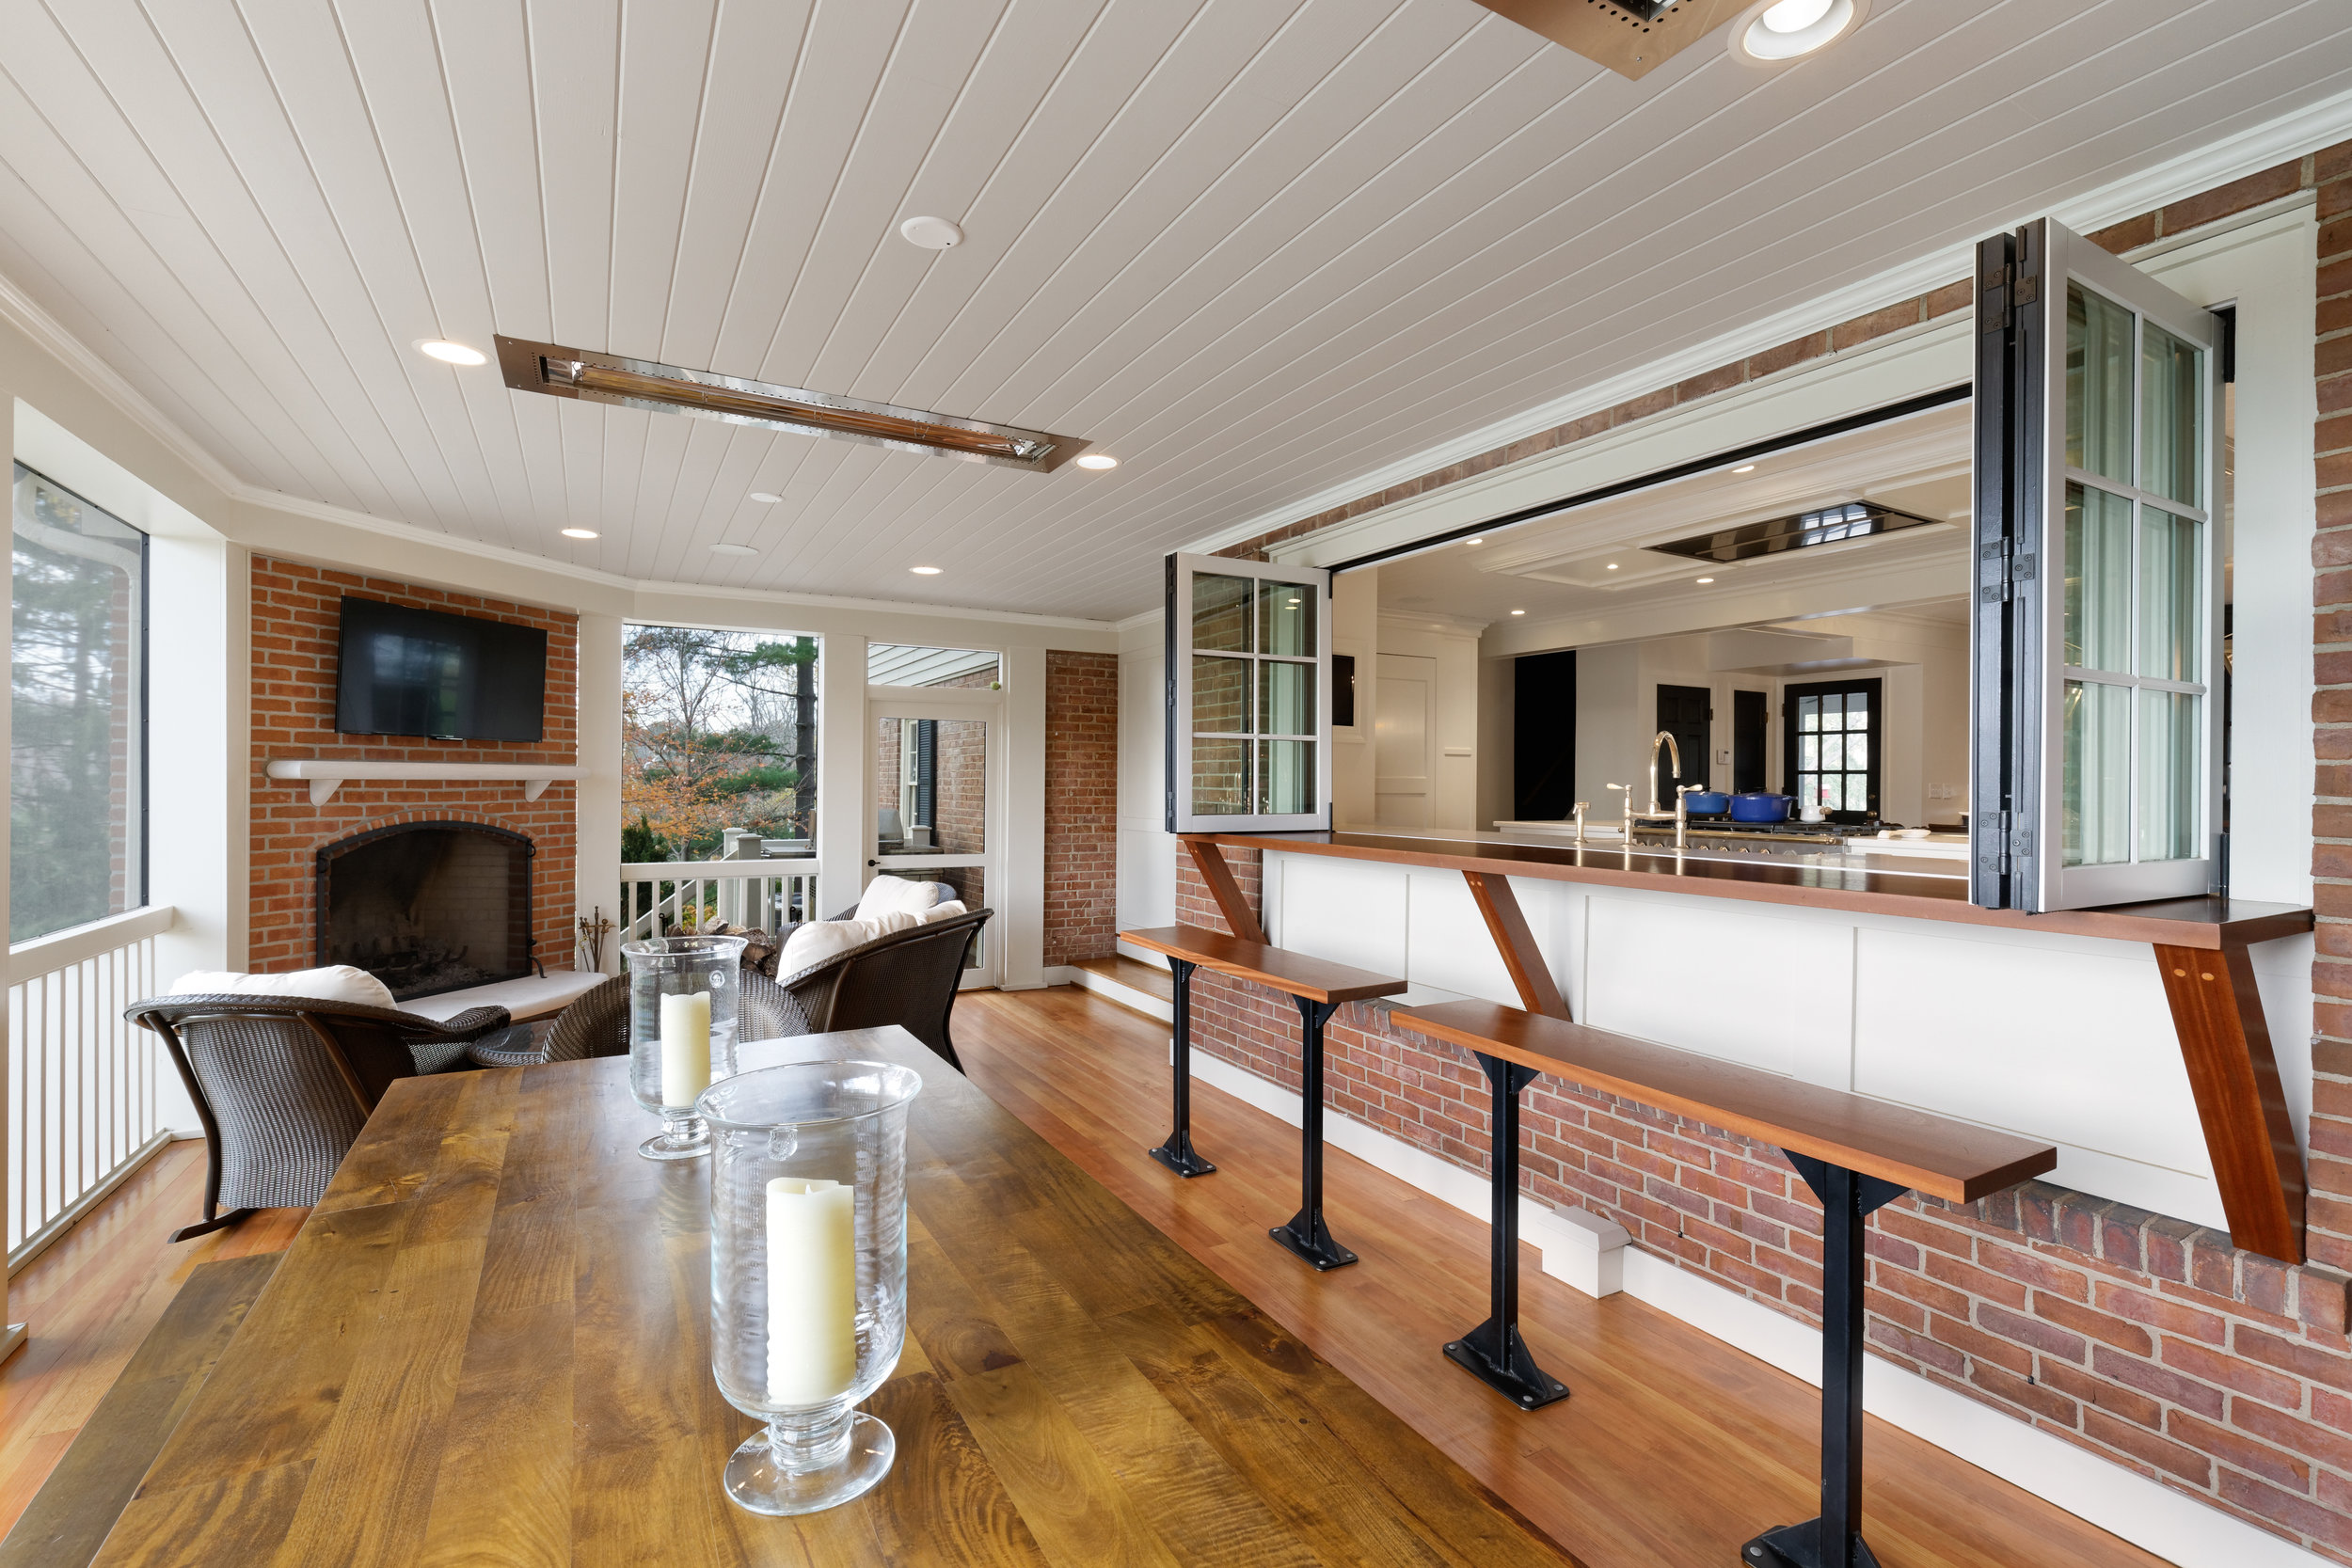 Covered Porch with Ceiling Heat and Pass-thru from Kitchen